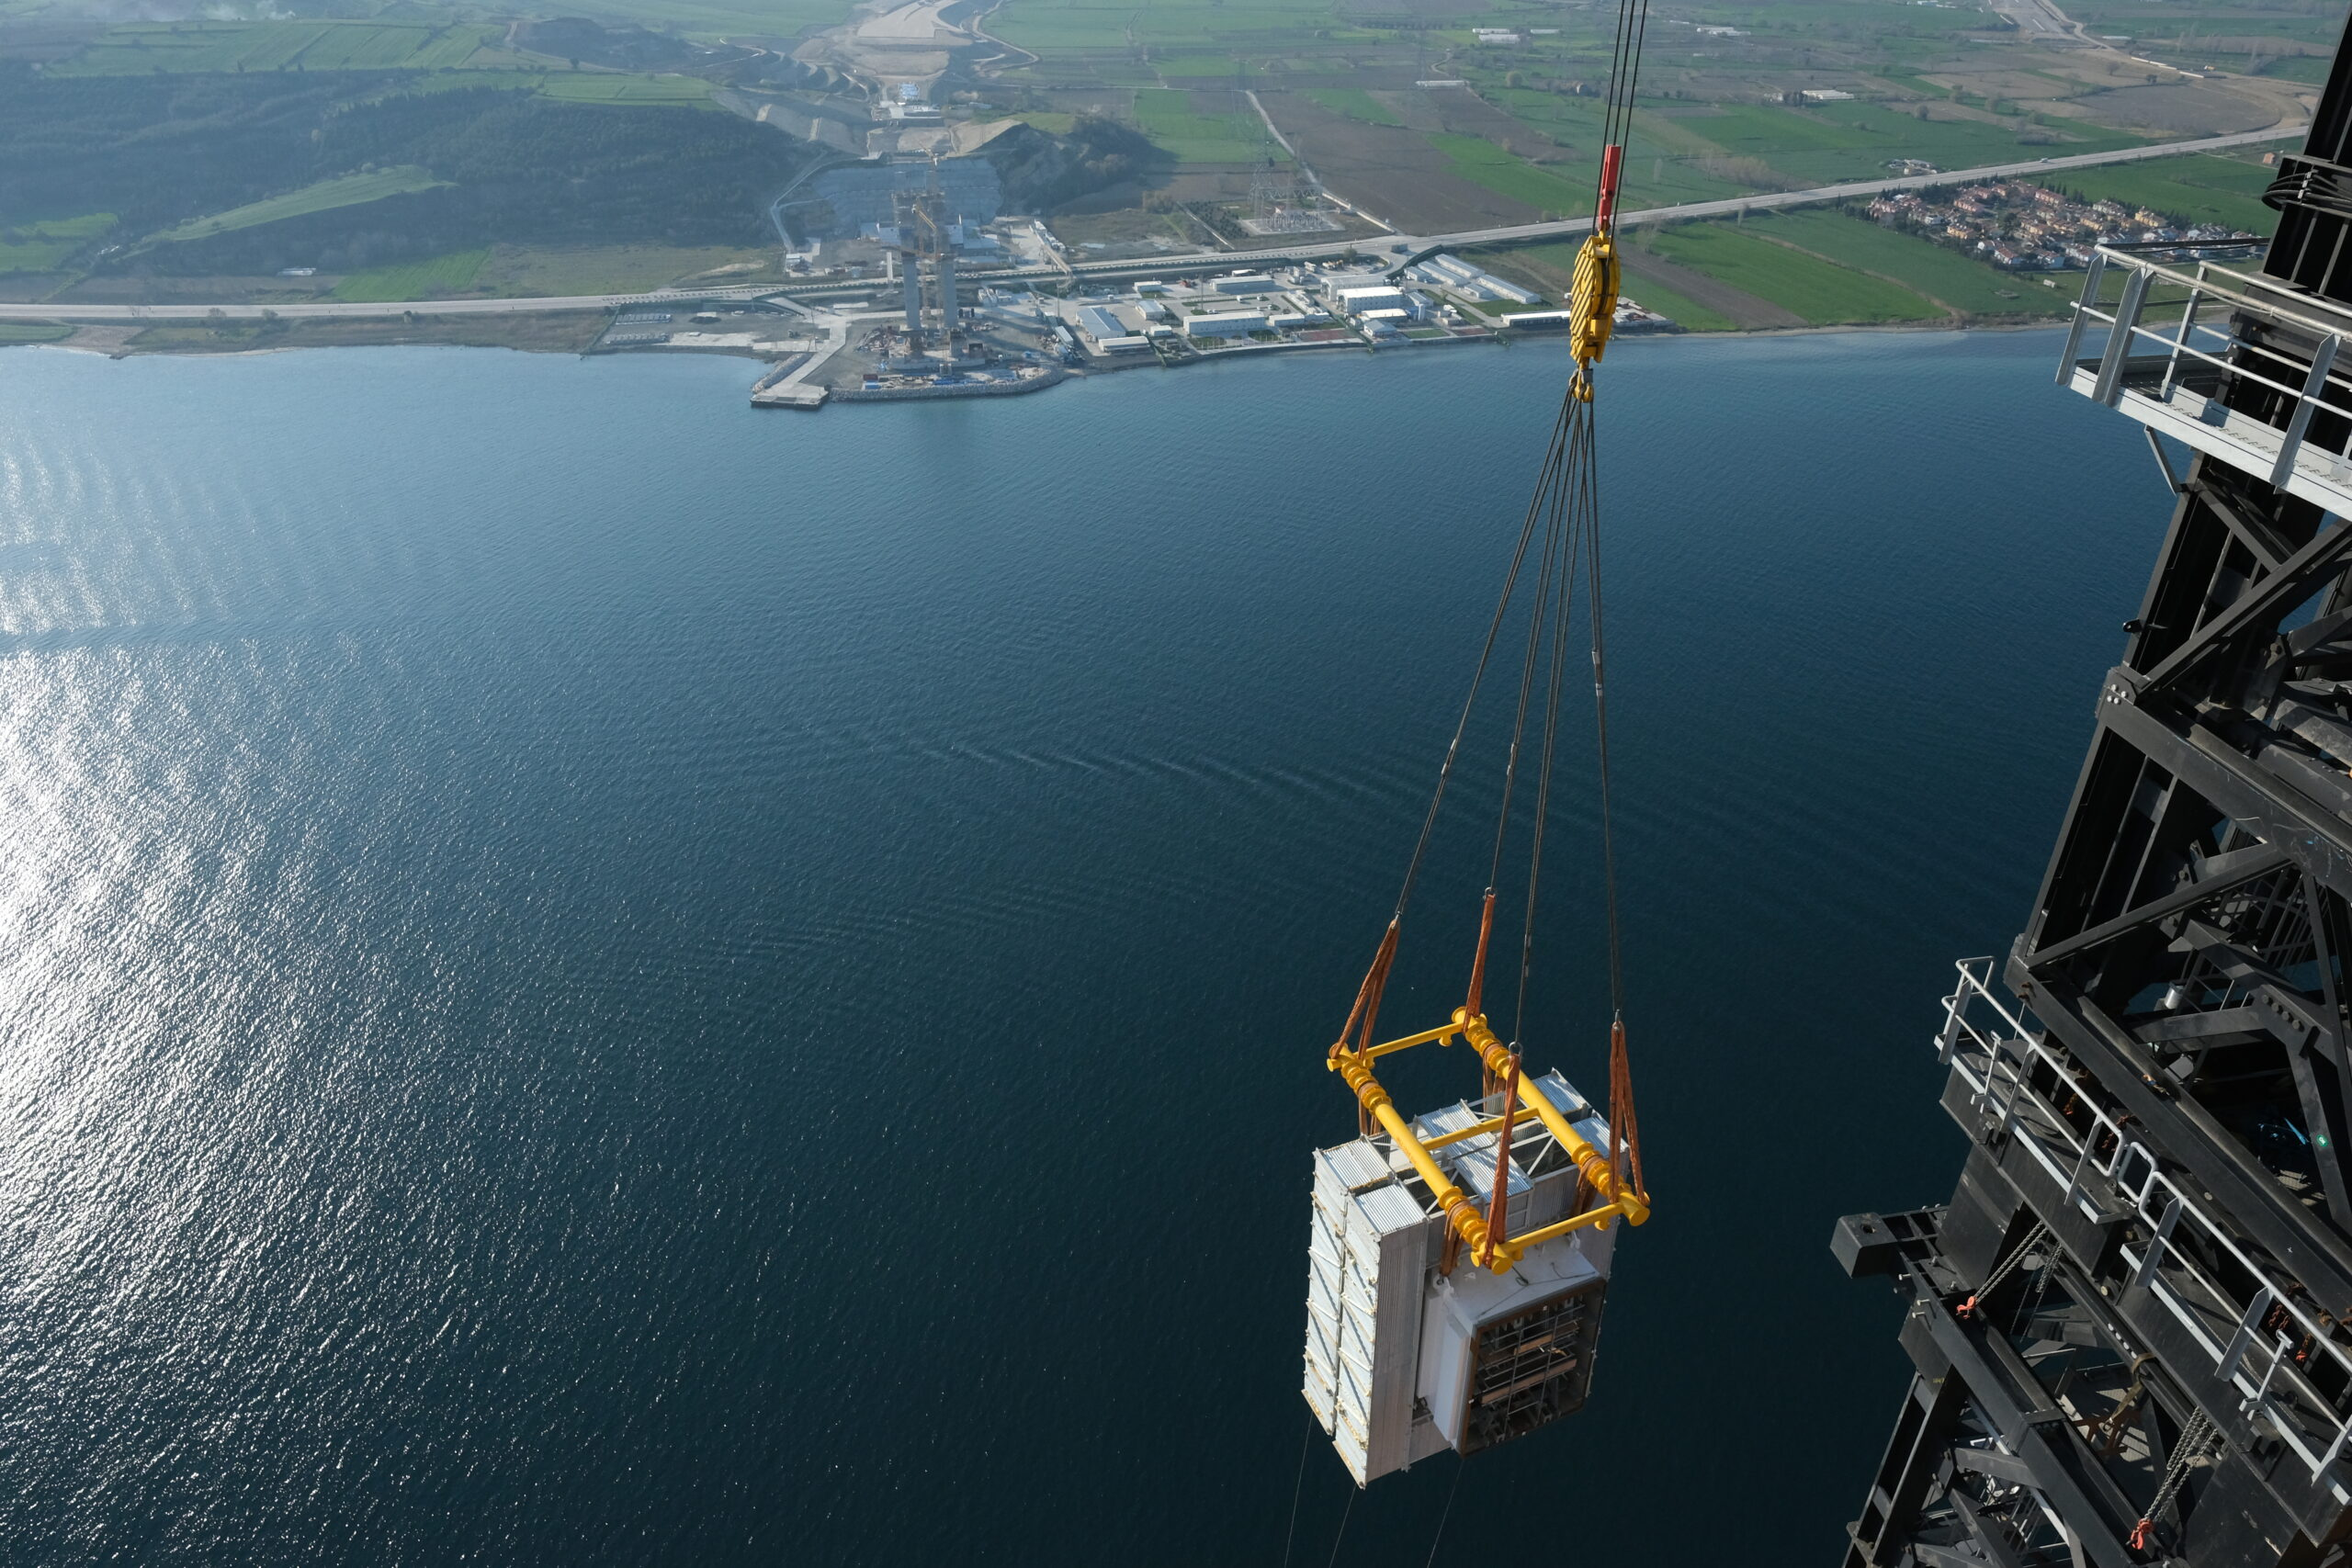 A section of the UCB being lifted 318m above the Canakkale Strait